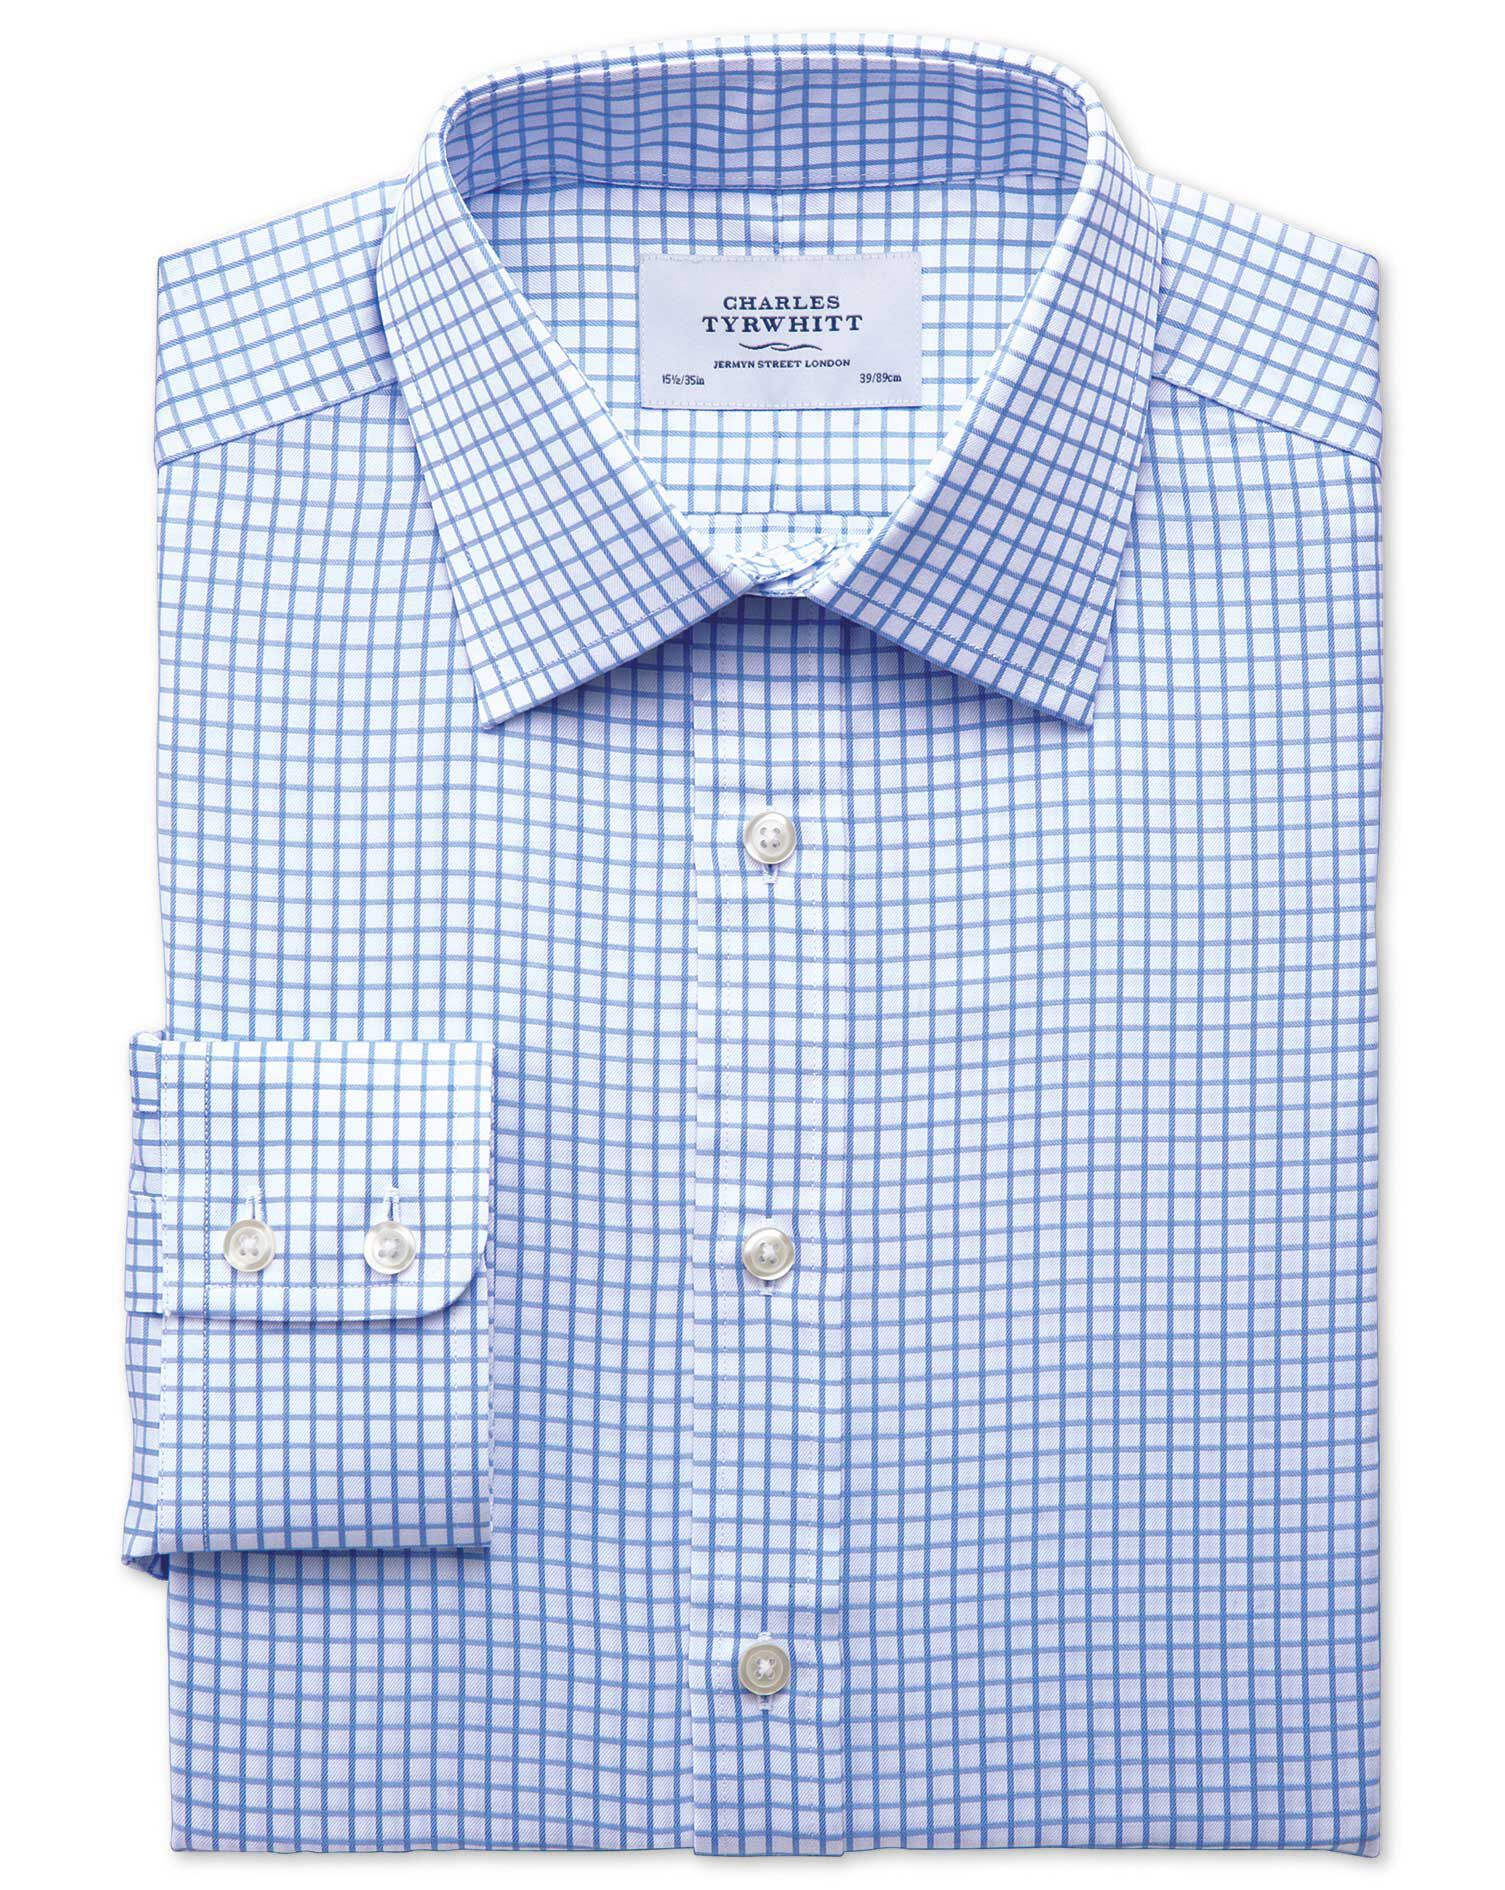 Classic Fit Twill Grid Check Sky Blue Cotton Formal Shirt Single Cuff Size 20/37 by Charles Tyrwhitt